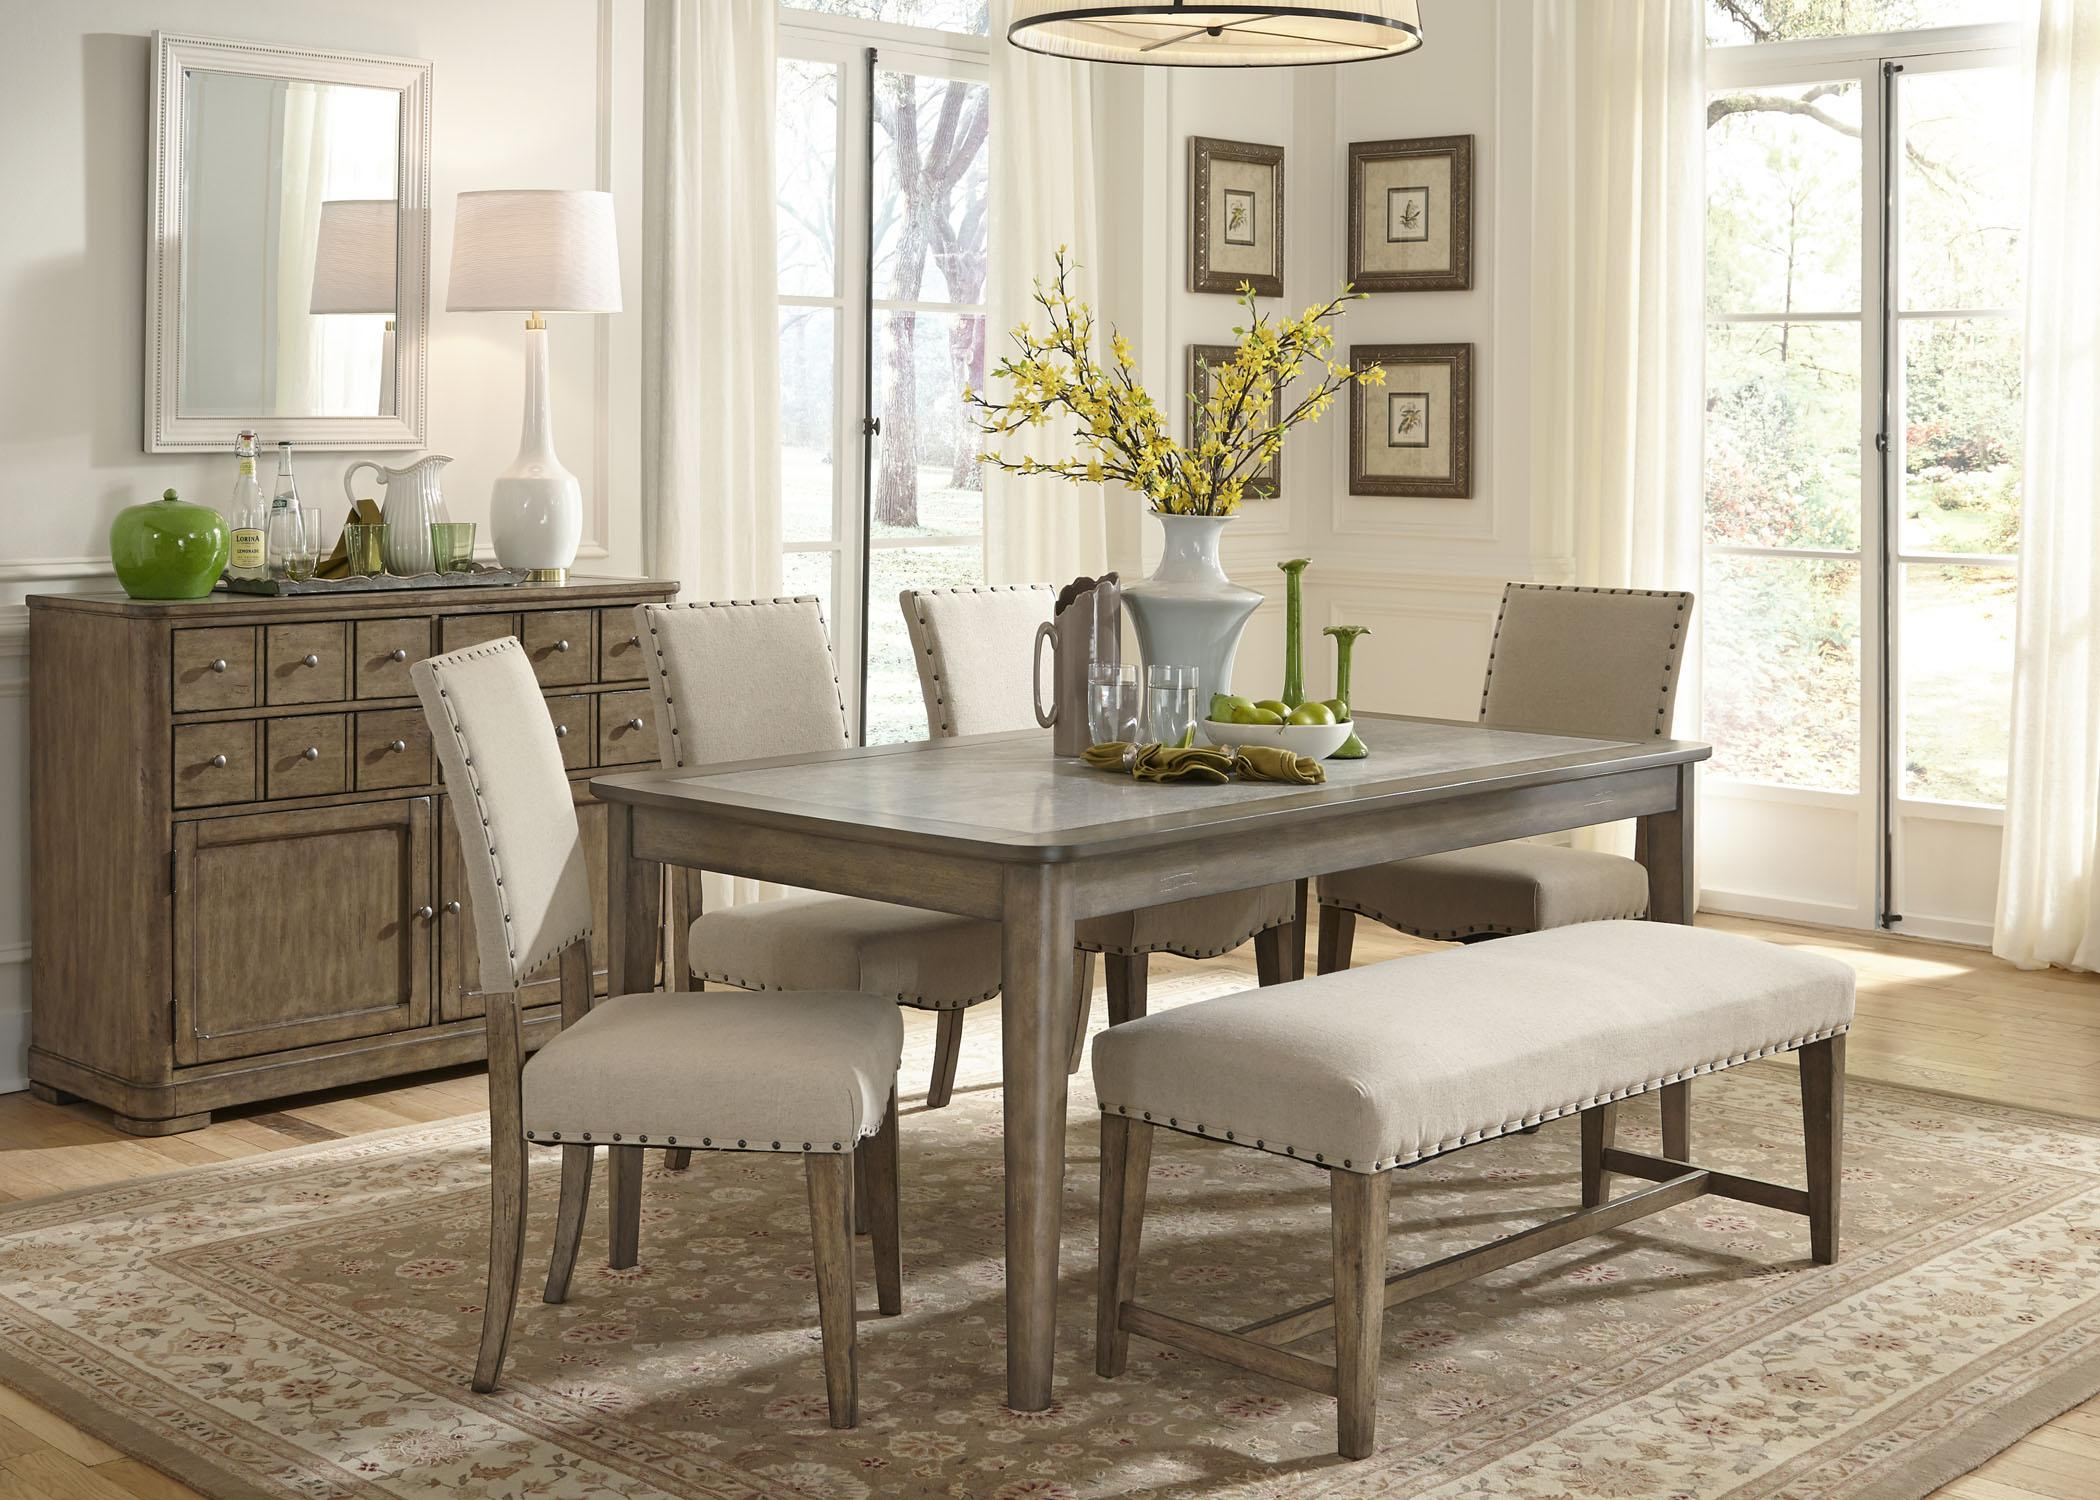 Rustic Casual Piece Dining Table And Chairs Set With Bench By